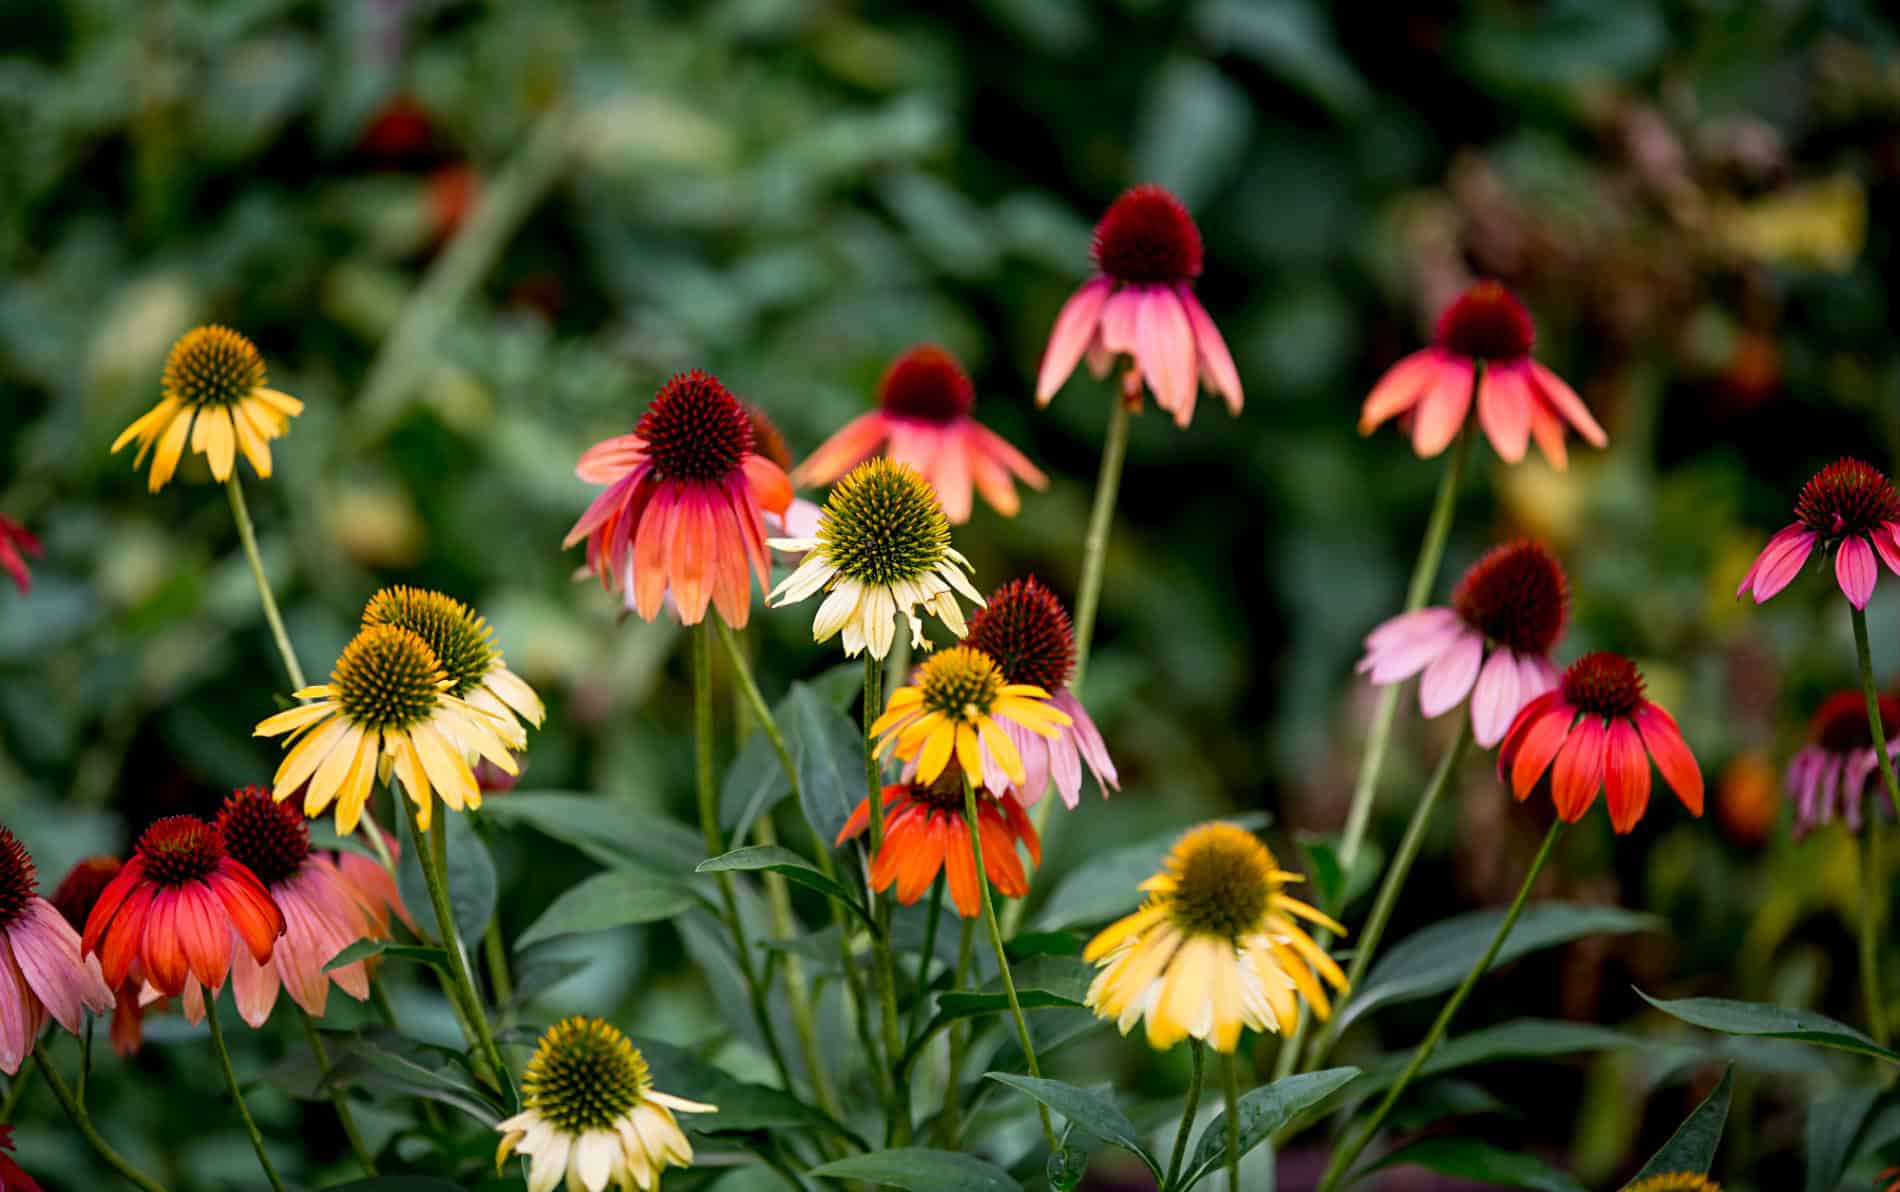 Large assortment of red, orange and yellow daisy like flowers with long green stems